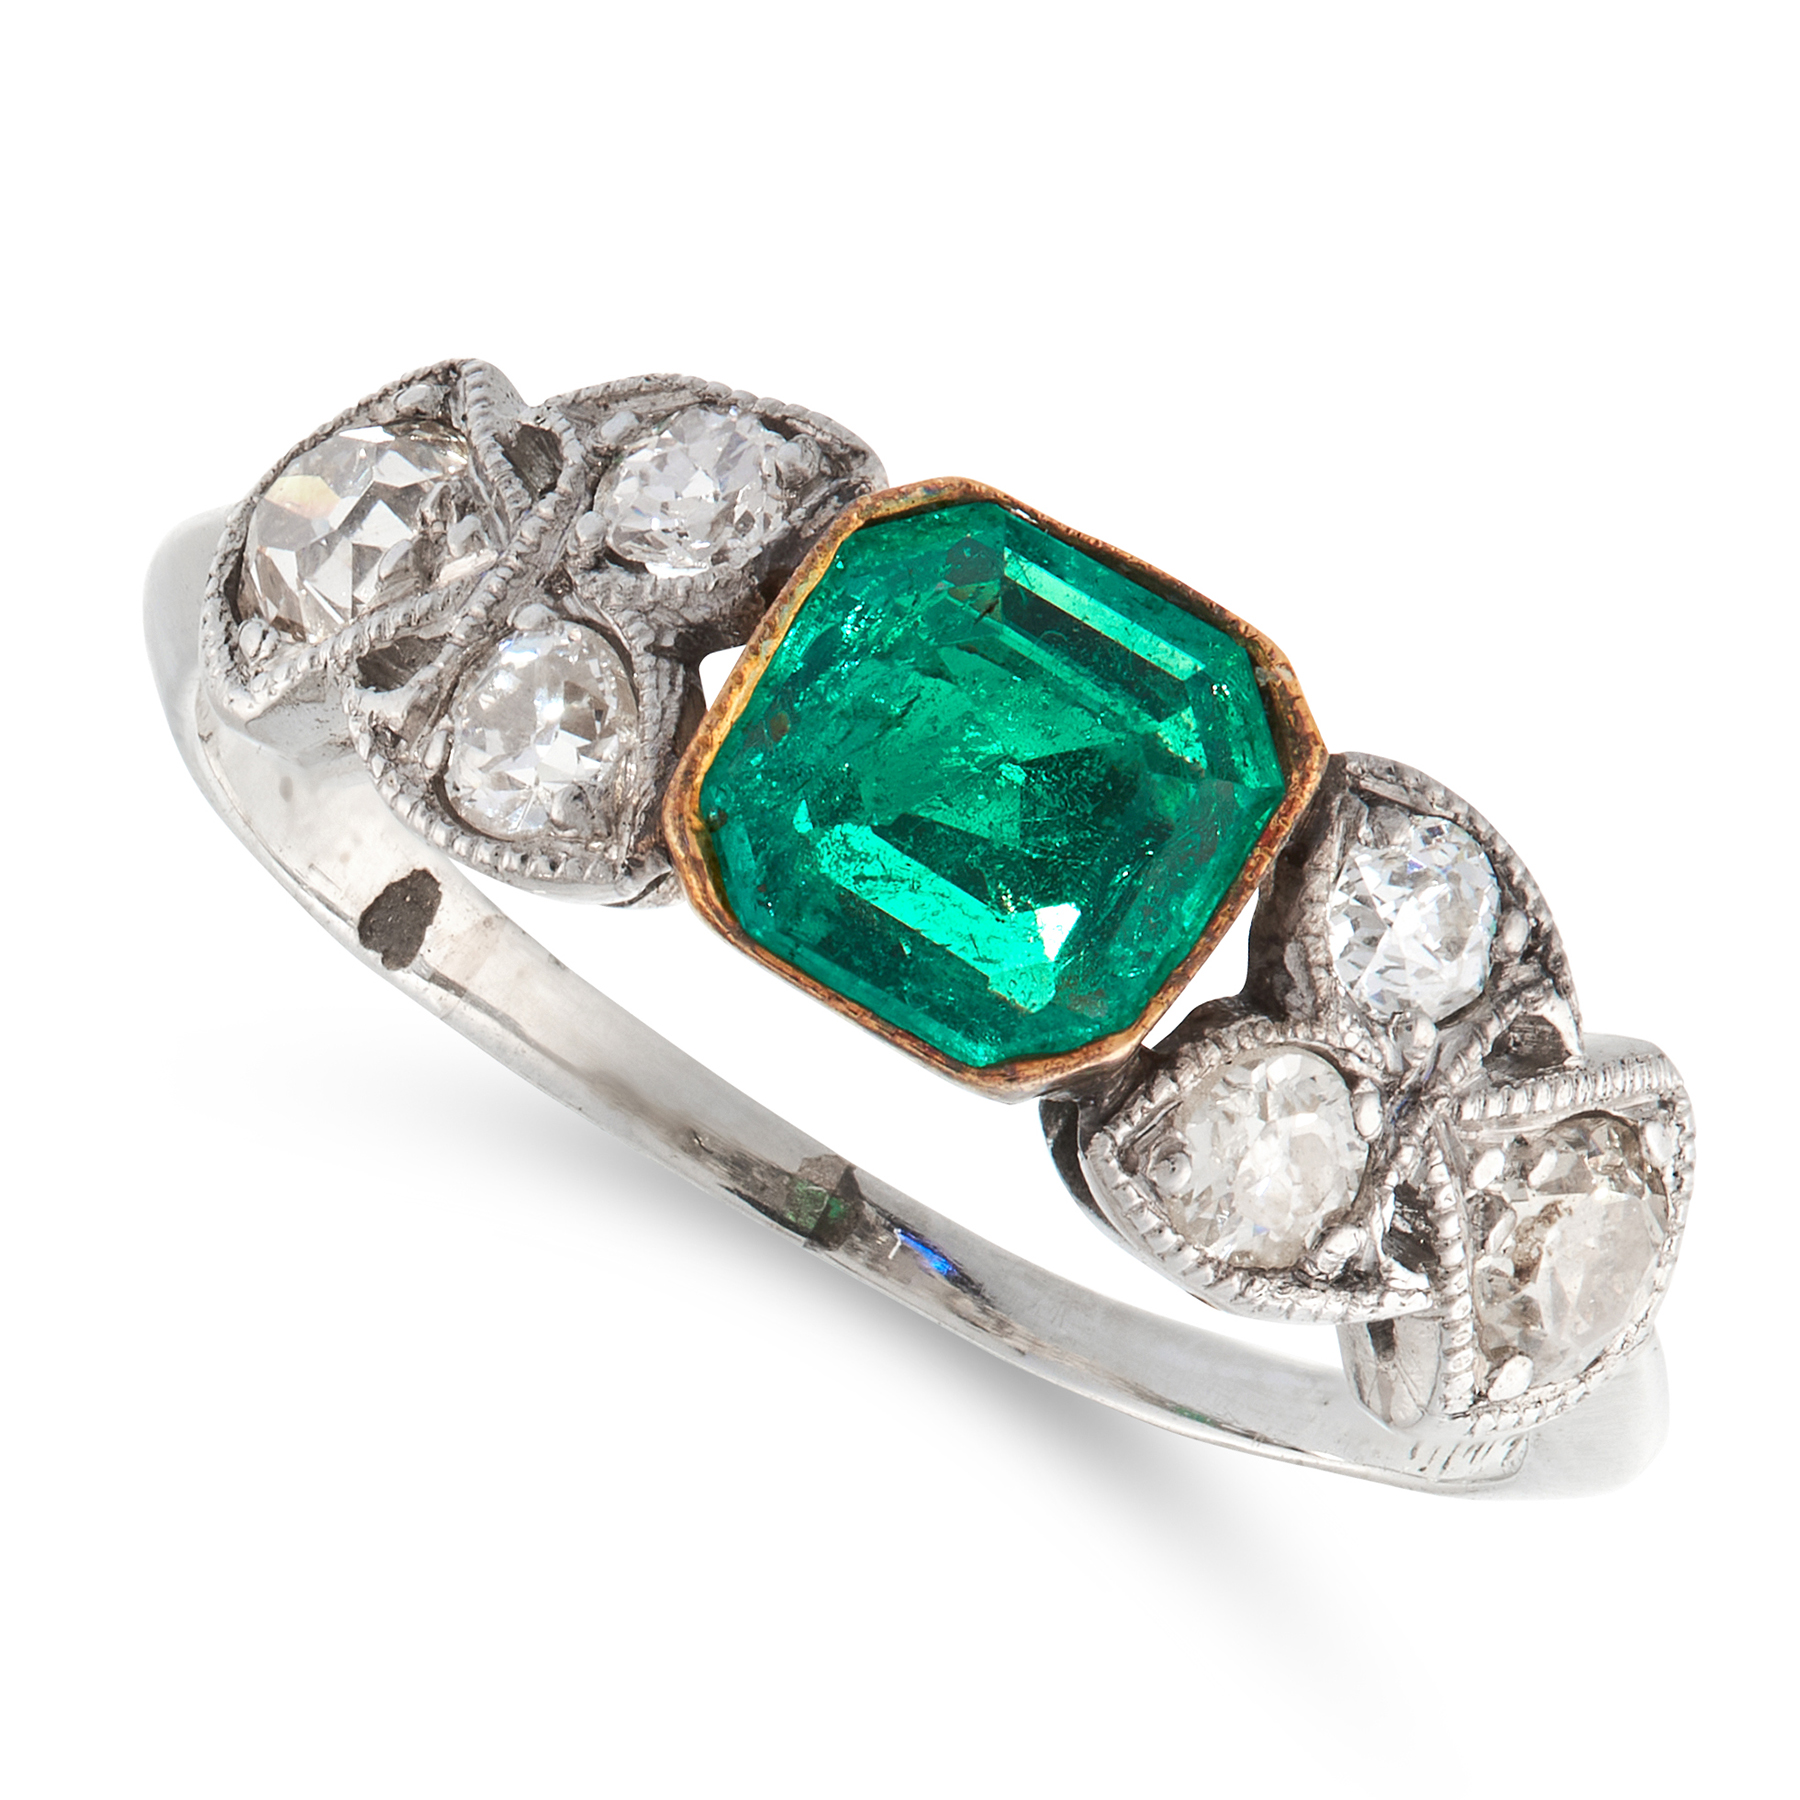 AN EMERALD AND DIAMOND DRESS RING in platinum, set with an emerald cut emerald of 0.37 carats